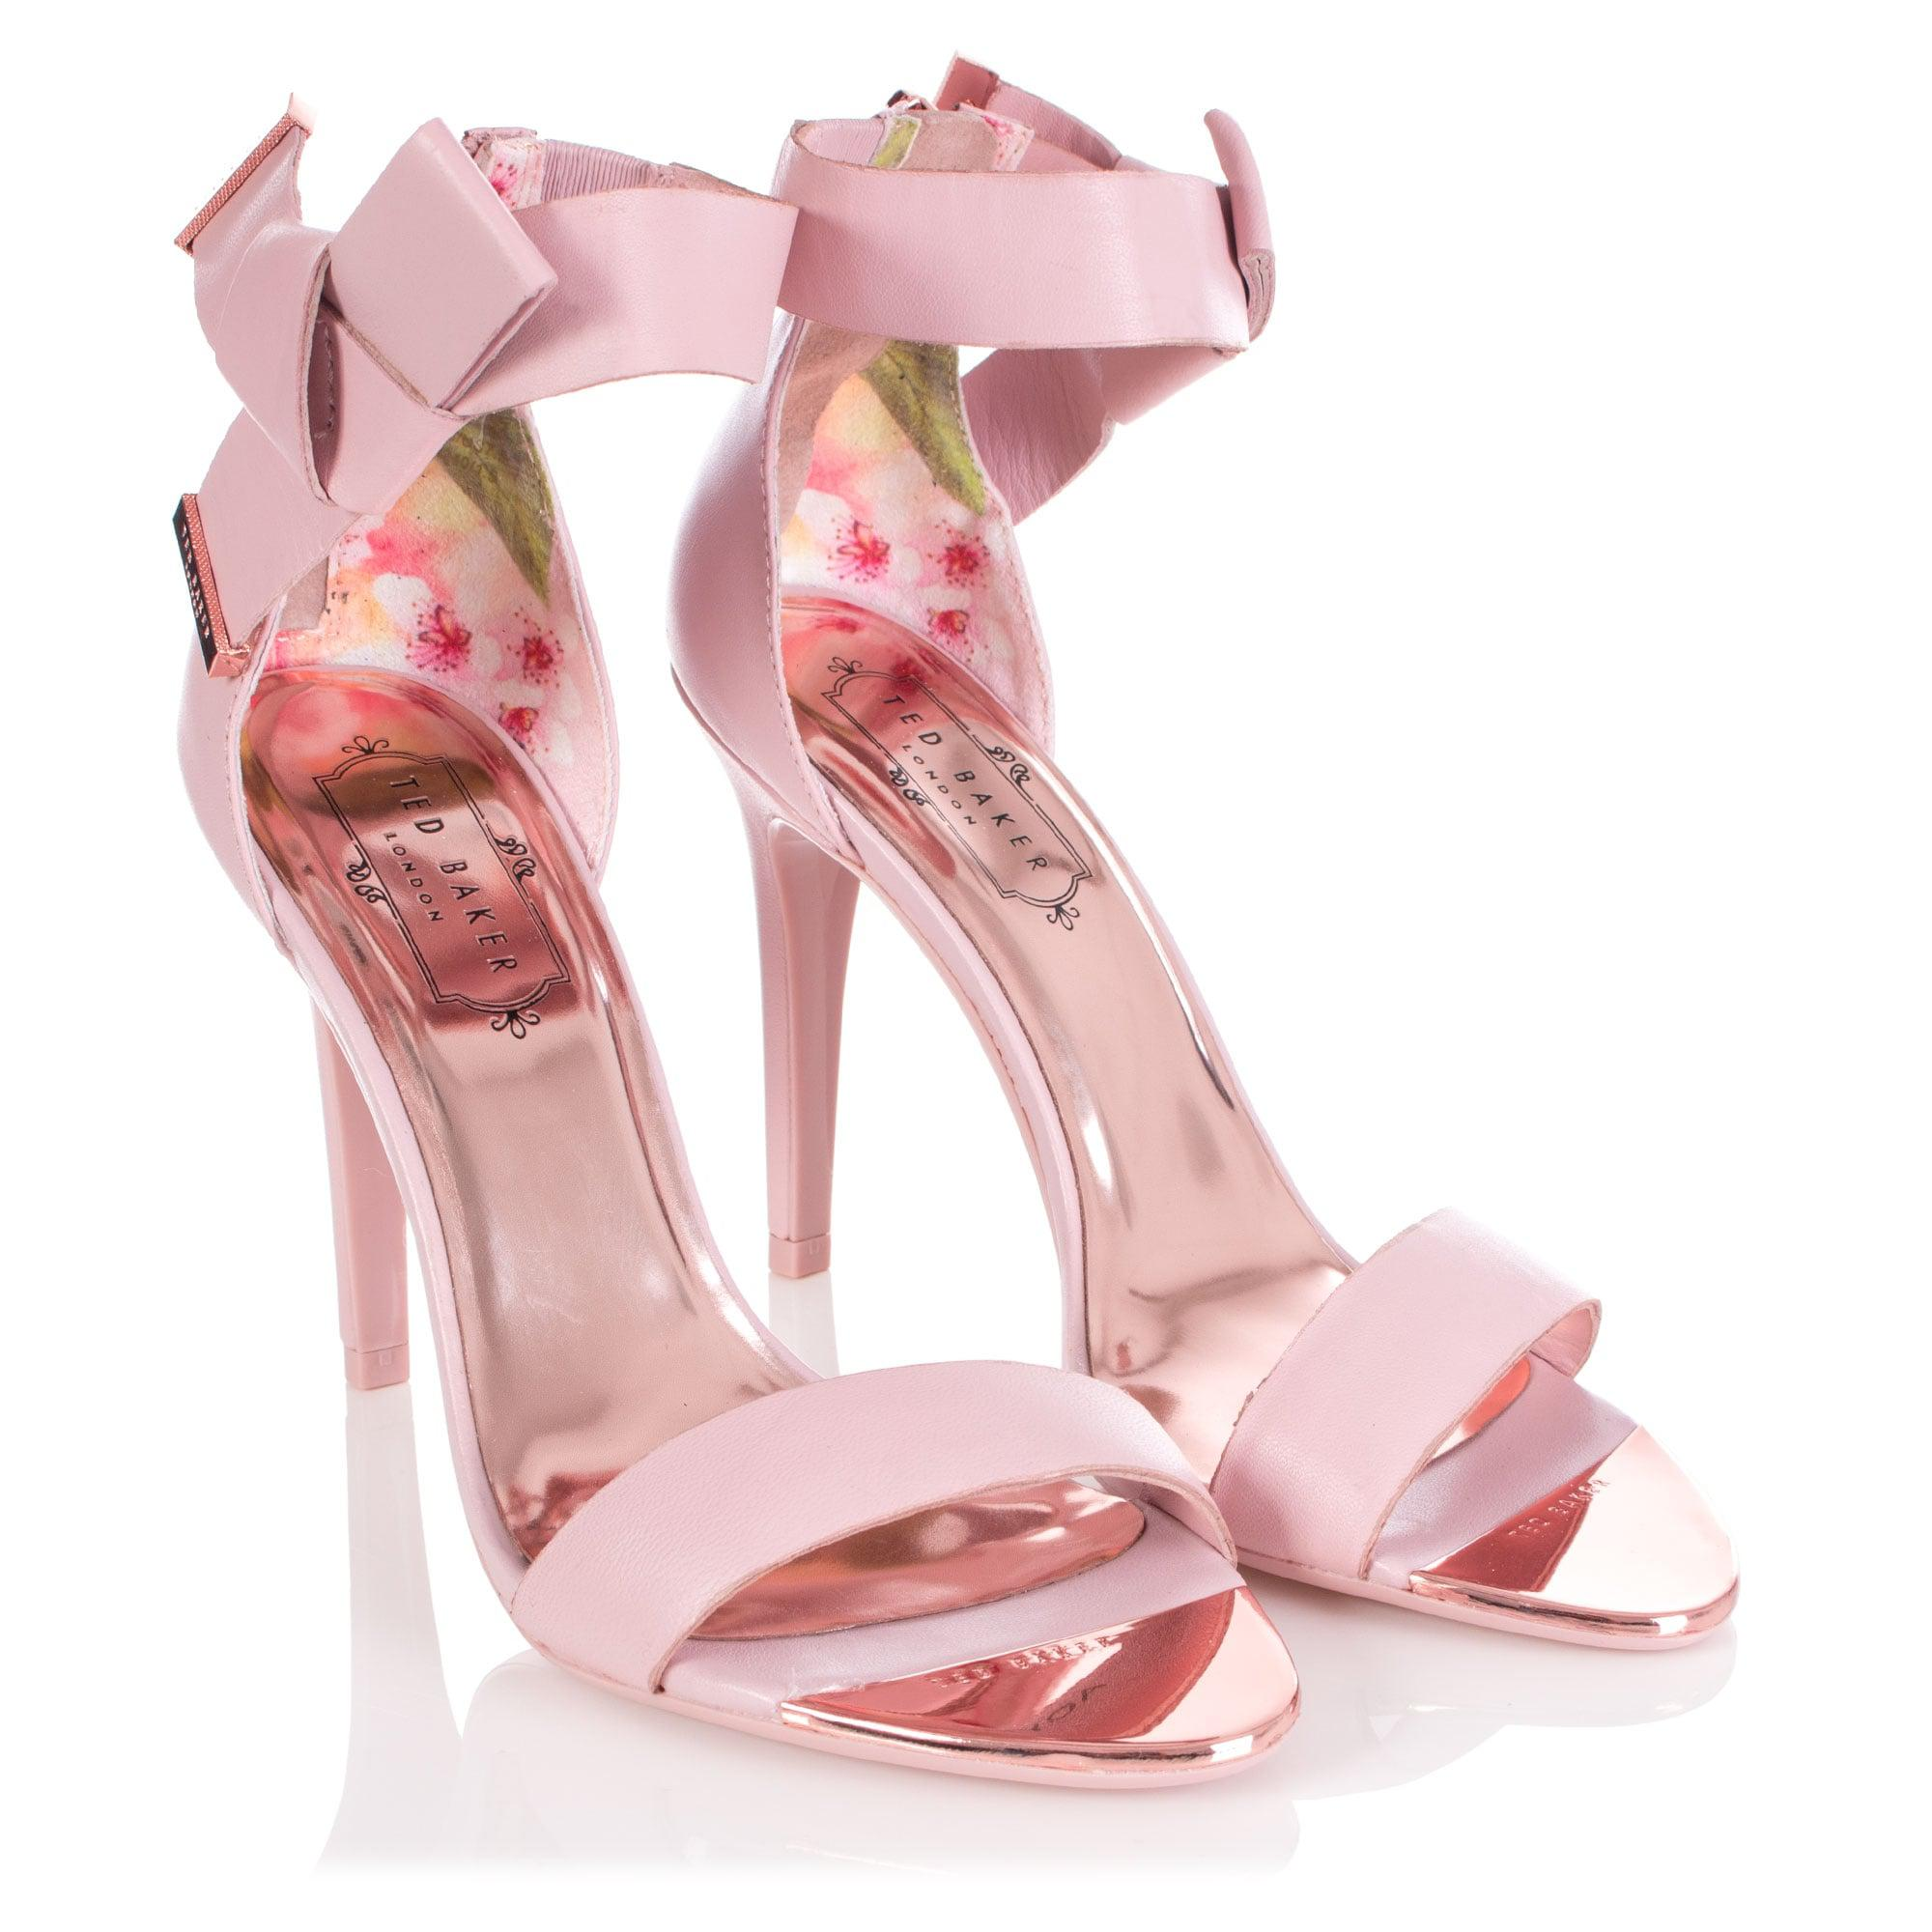 68fd3abf2bbb Ted Baker Saphrun Knotted Bow Leather Sandal in Pink - Lyst